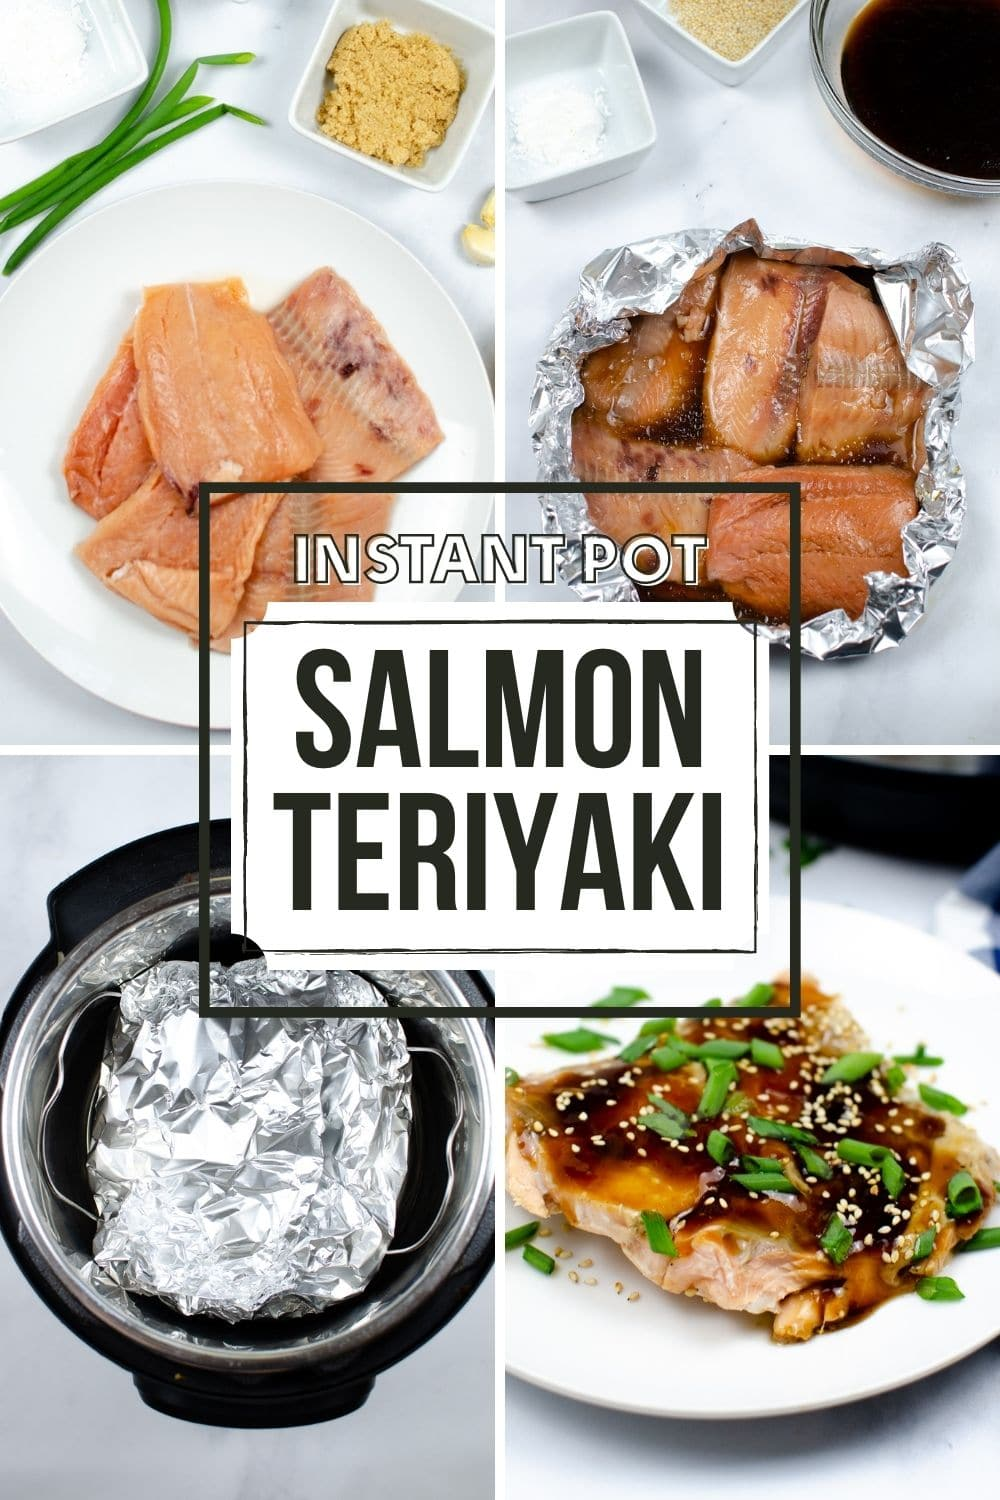 This juicy, moist, and tender flakey salmon in a brown homemade Teriyaki Sauce is ready in just 15 minutes in an instant pot. #instantpot #salmon #teriyakisauce #dinner #recipe via @wondermomwannab